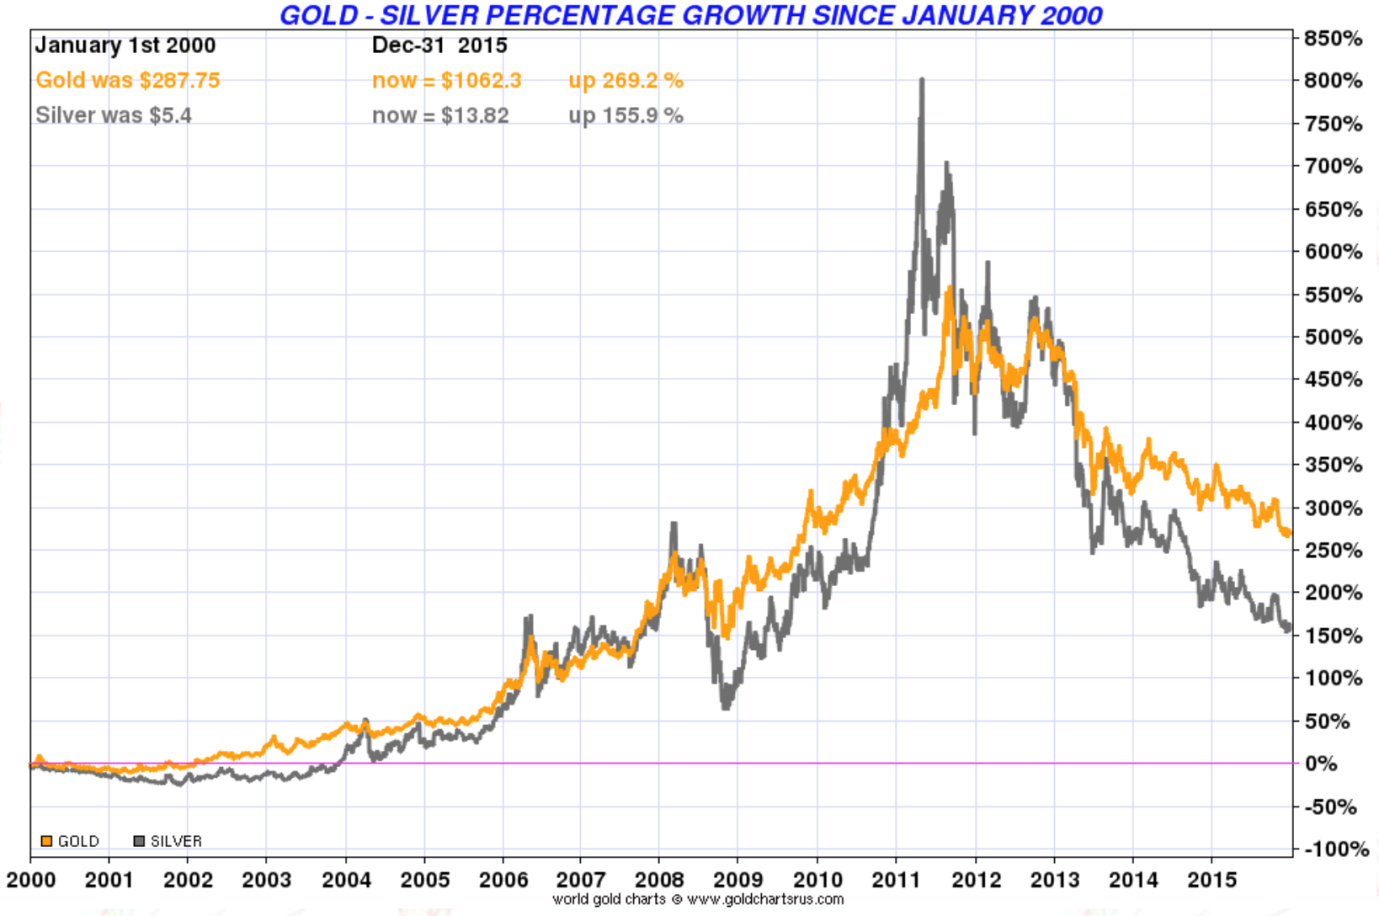 Gold - Silver percentage growth since january 2000